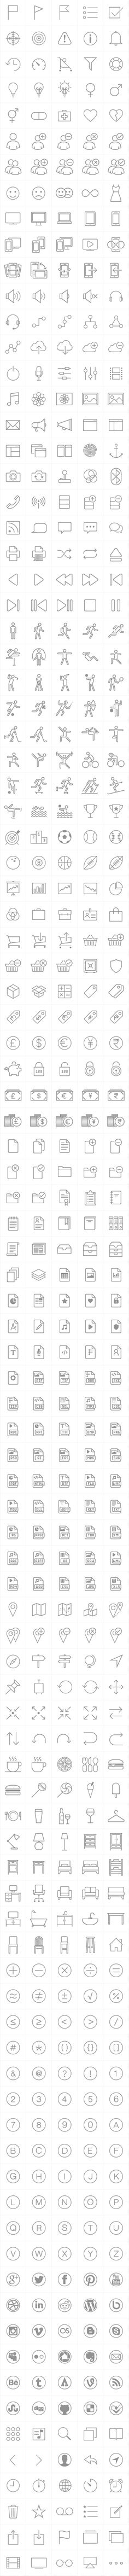 PixelLove | iOS 7 vector tab bar icons for iPhone & iPad apps